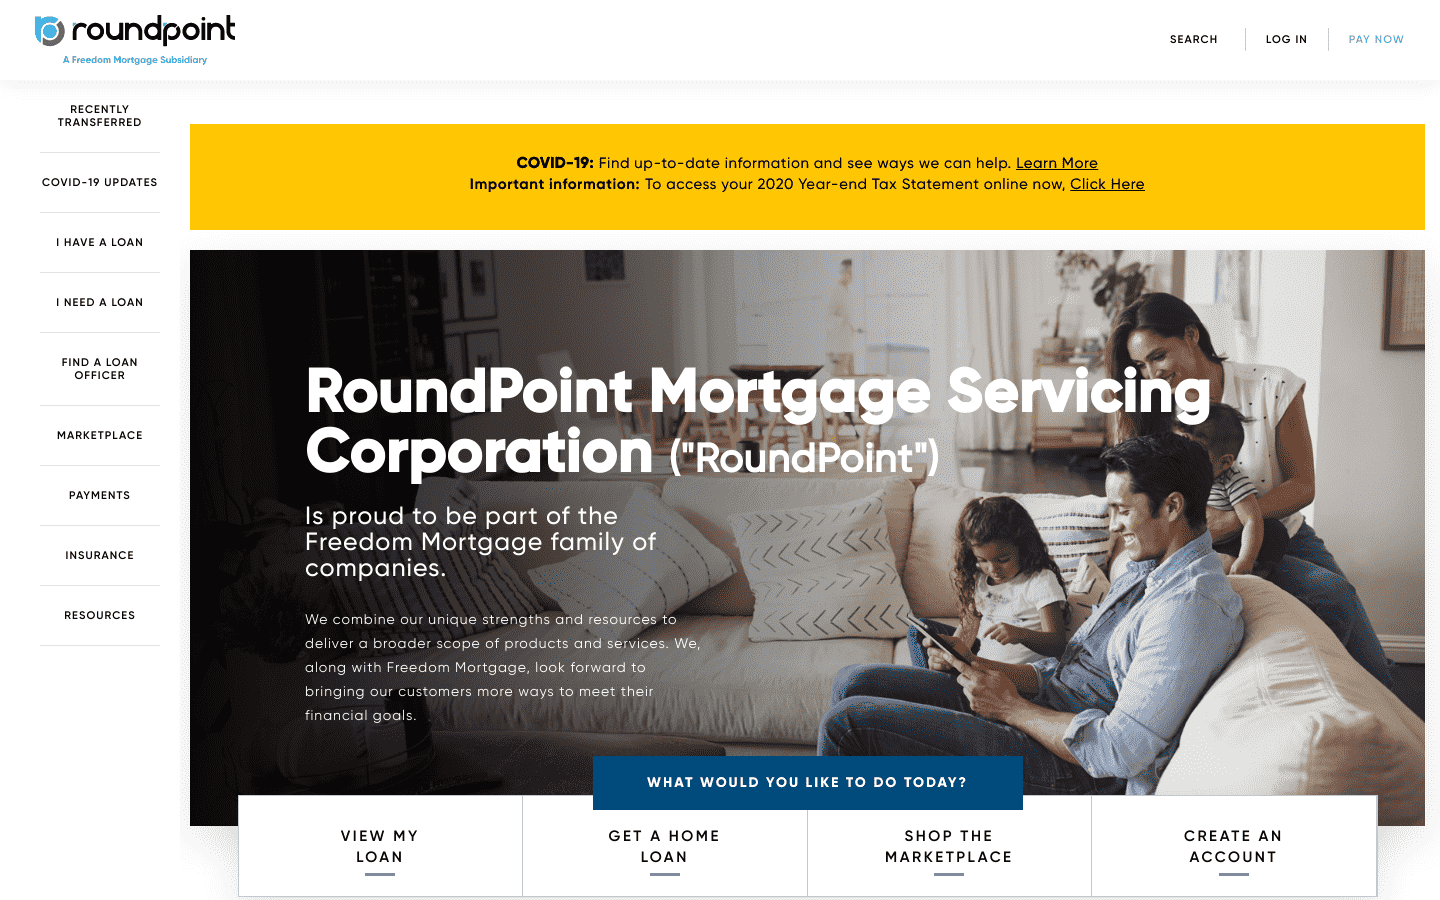 Roundpoint Mortgage Servicing reviews and complaints